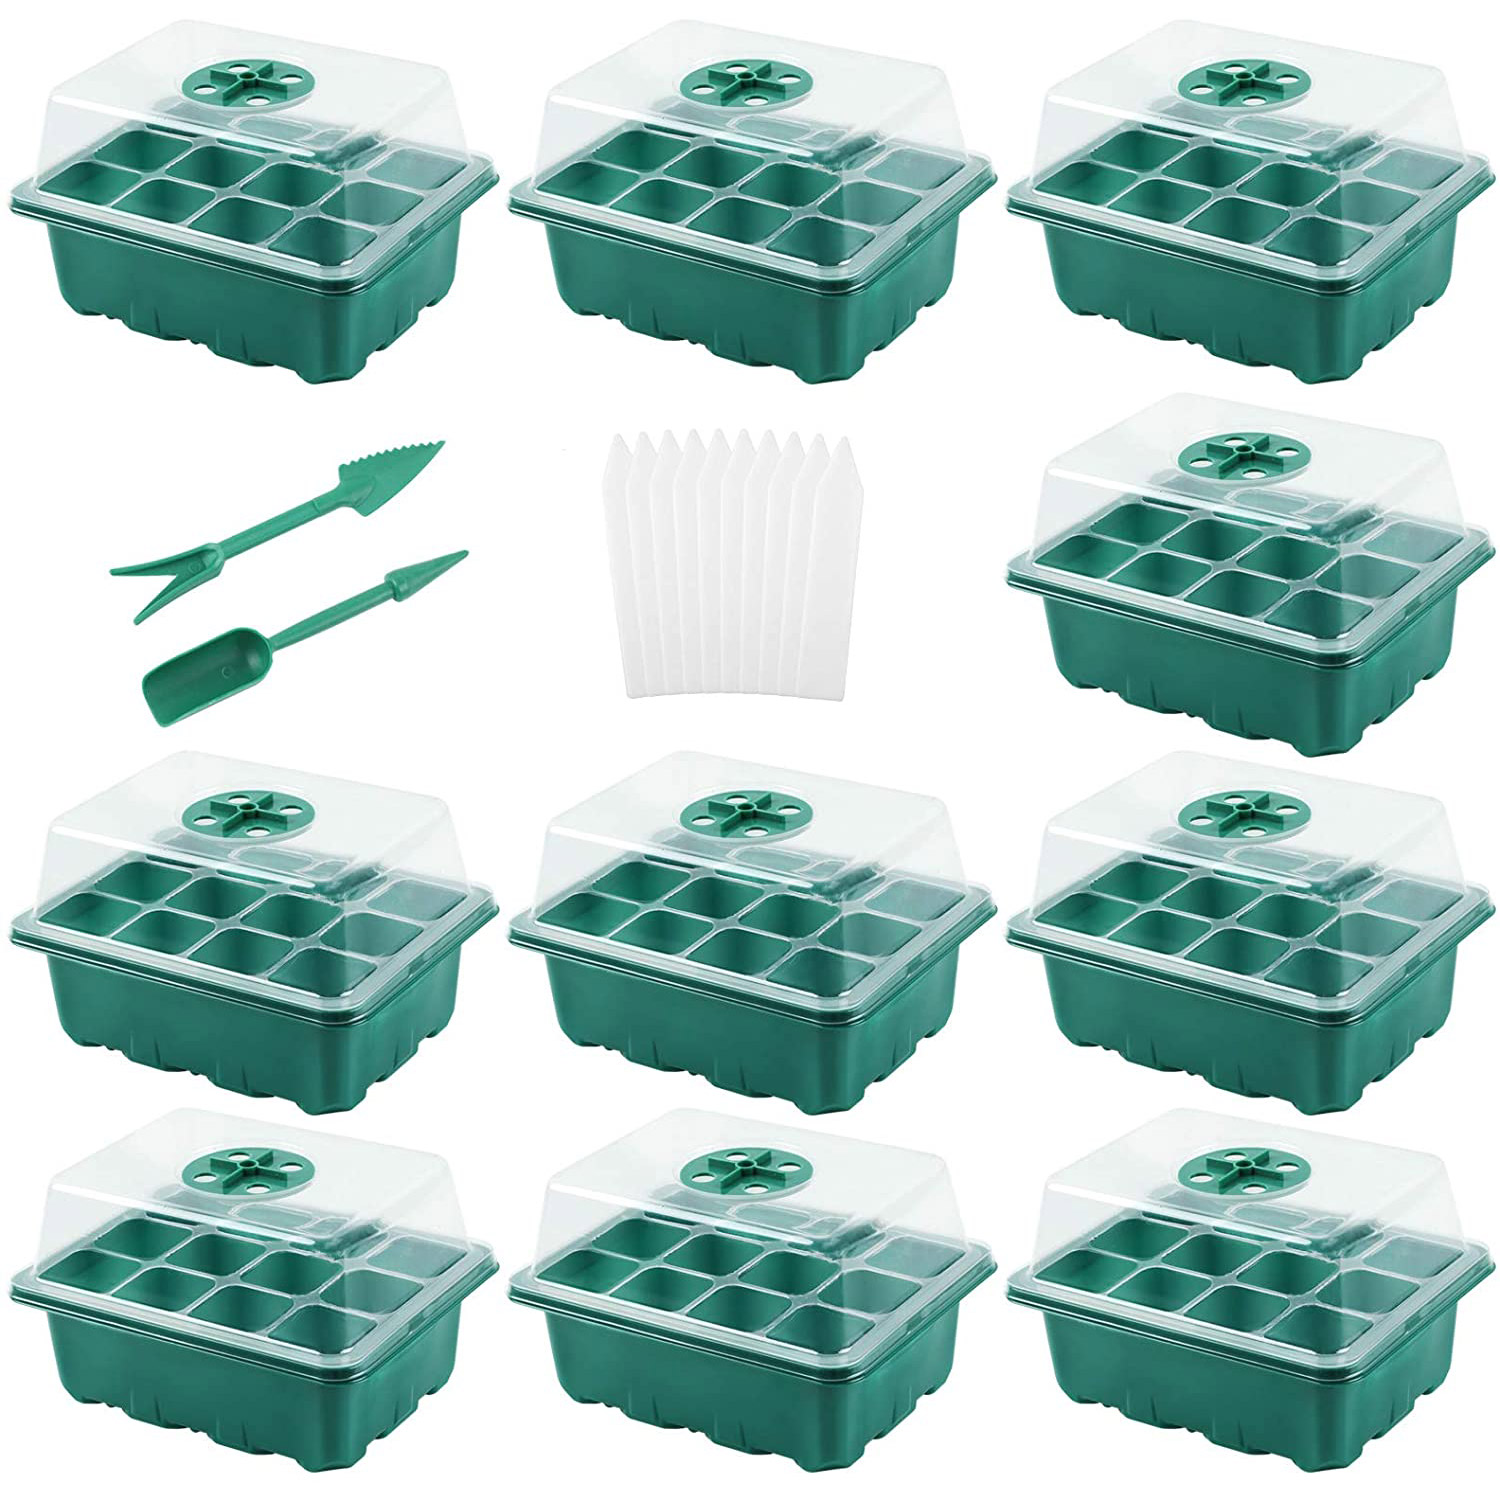 10 Pack SeedStarter Trays Seedling 12 Cells per Tray, Humidity Adjustable Plant Starter Kit with Dome